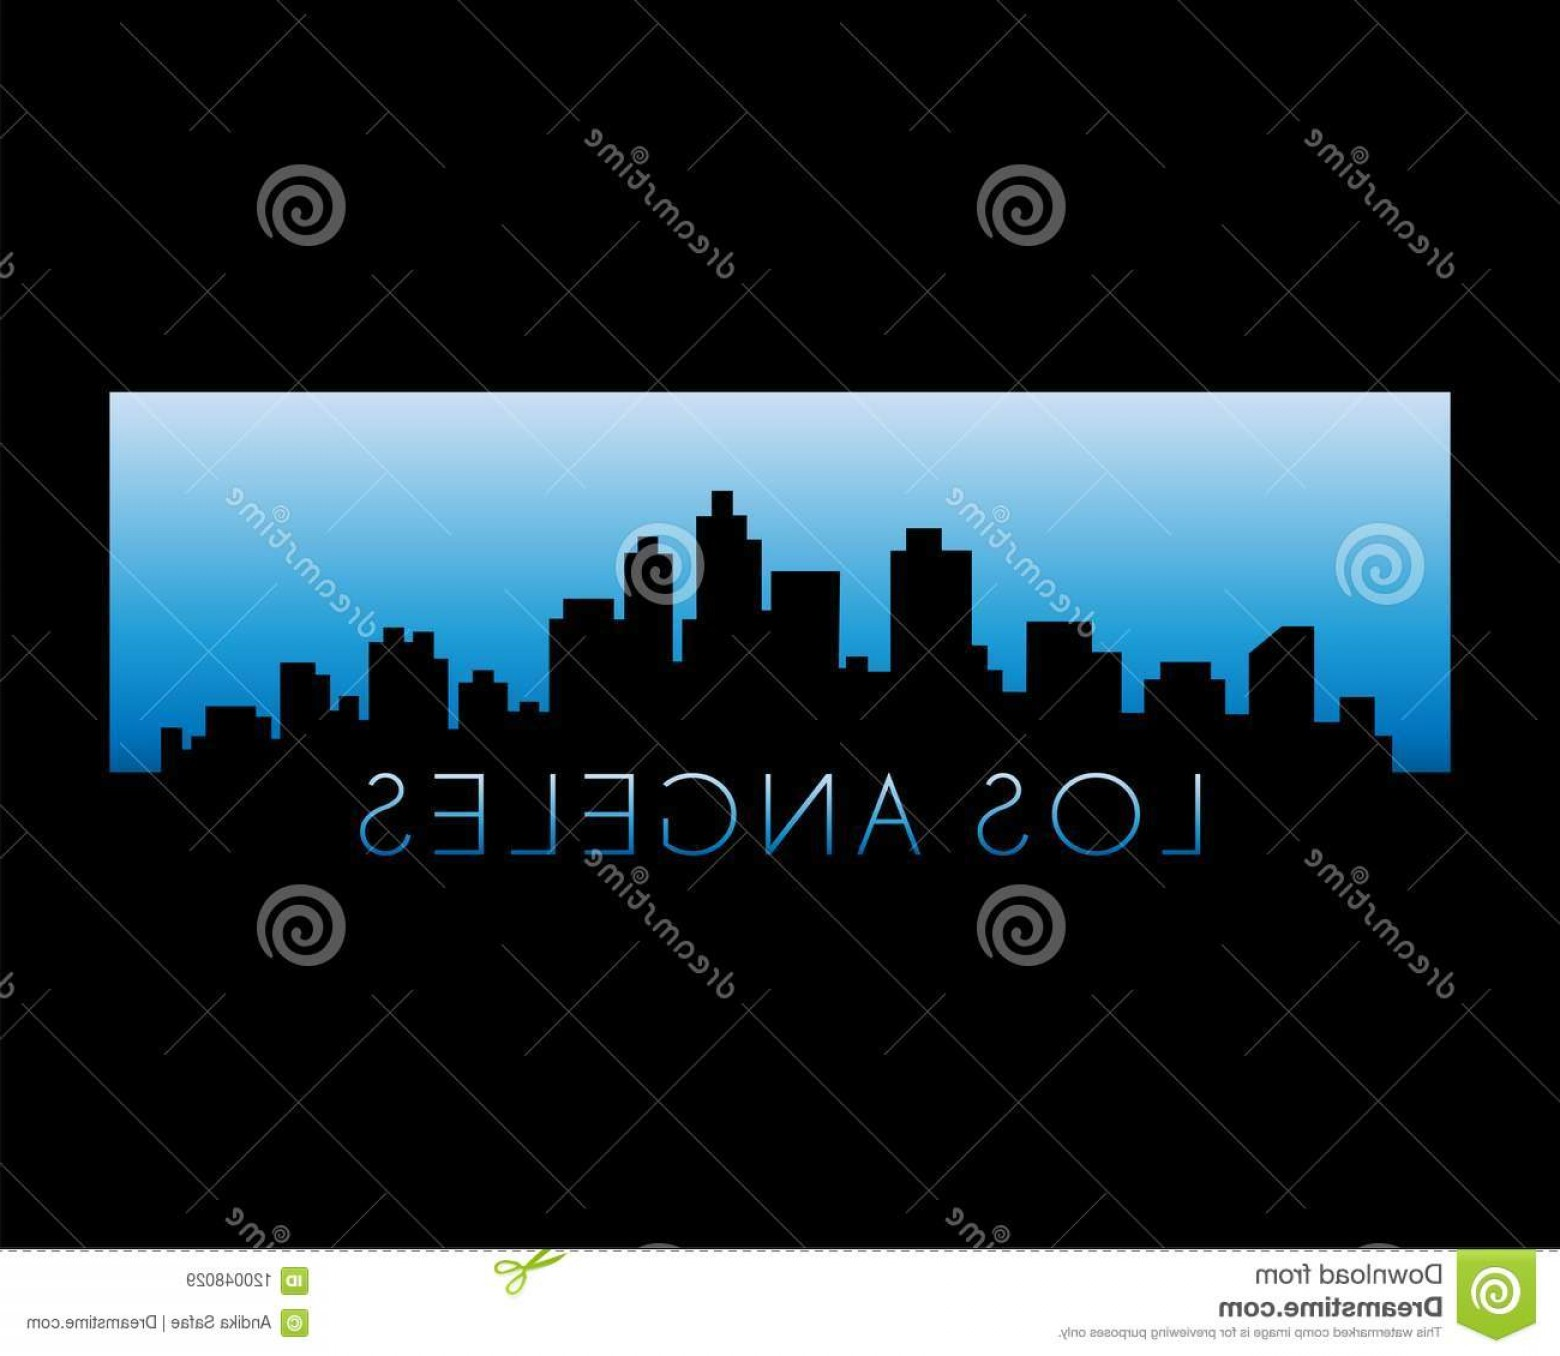 Hollywood Skyline Silhouette Vector: Los Angeles City Skyline Isolated Black Background Vector Illustration Eps Los Angeles City Skyline Vector Illustration Image